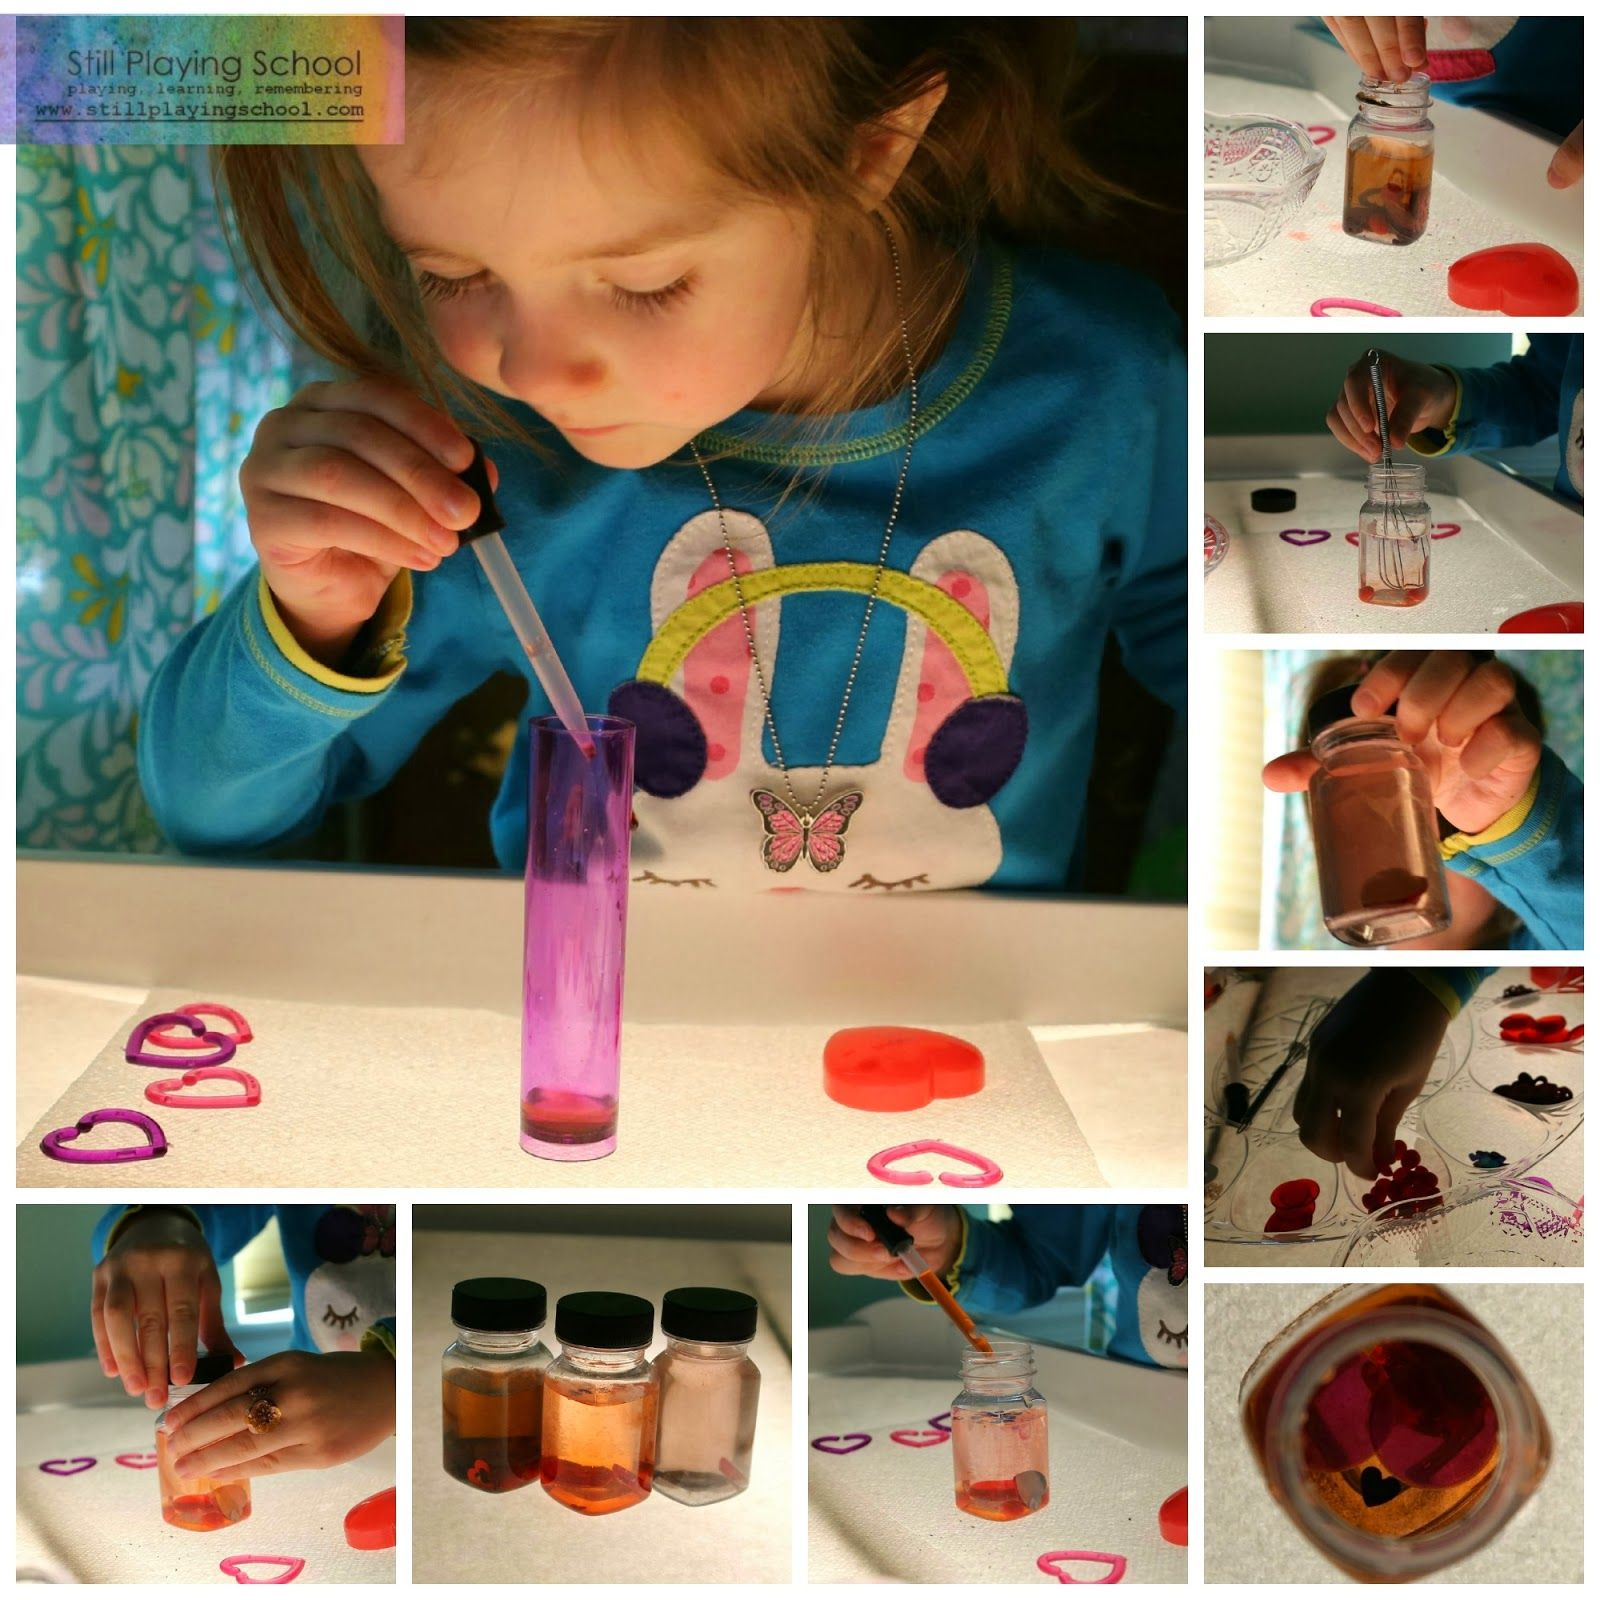 Still Playing School: Love Potions: Color Mixing on the Light Table